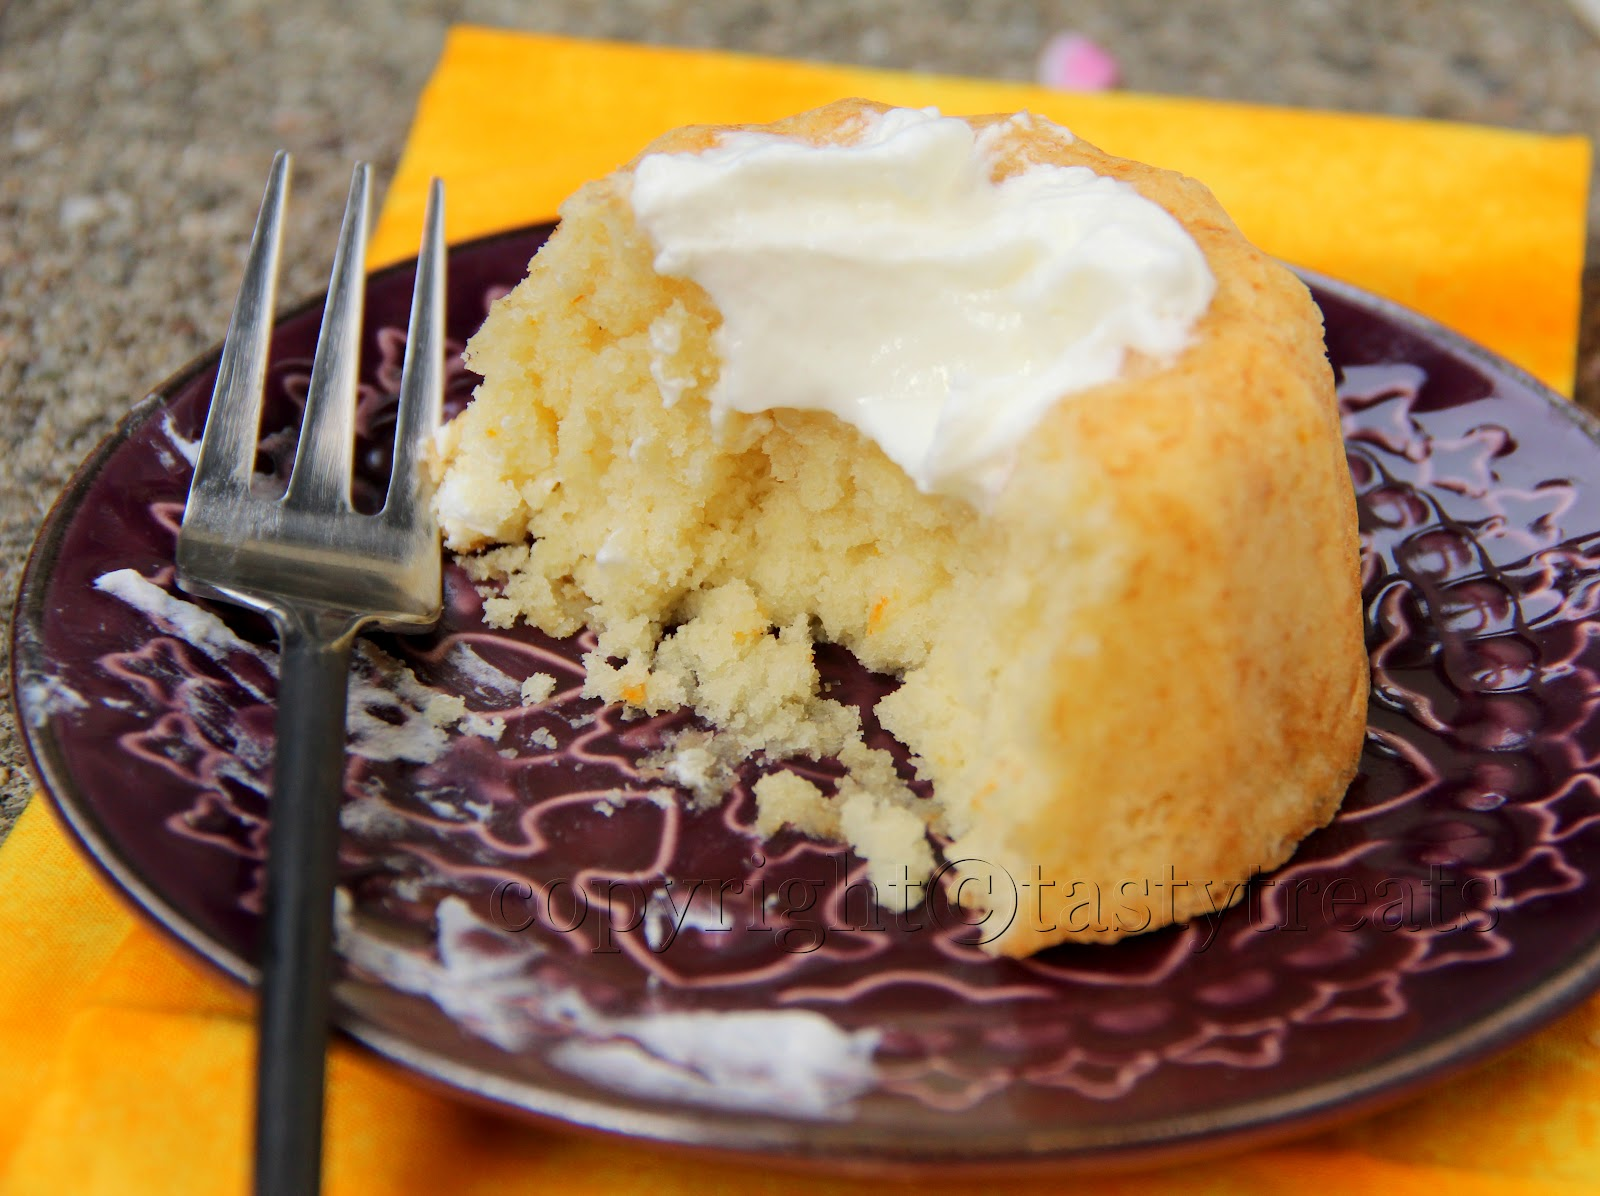 Tasty Treats: Orange Whipped Cream Cake